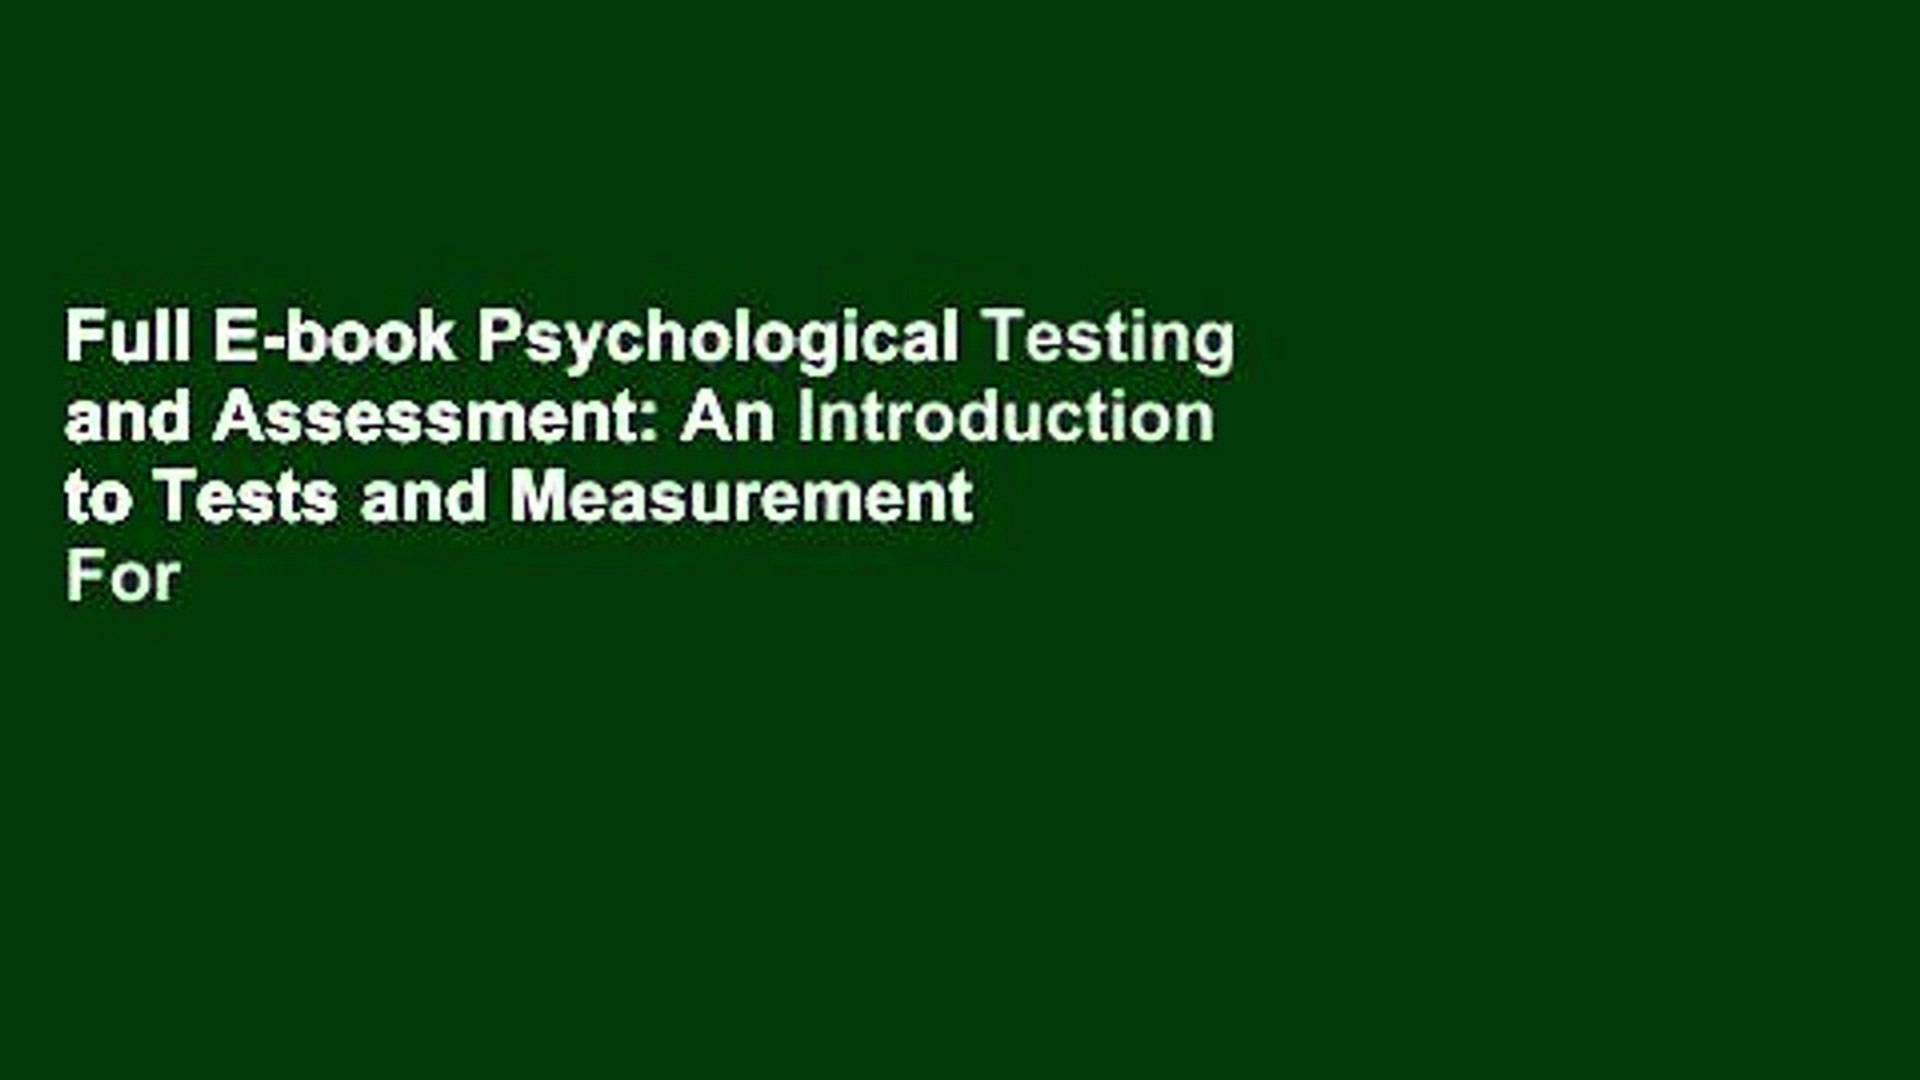 Full E-book Psychological Testing and Assessment: An